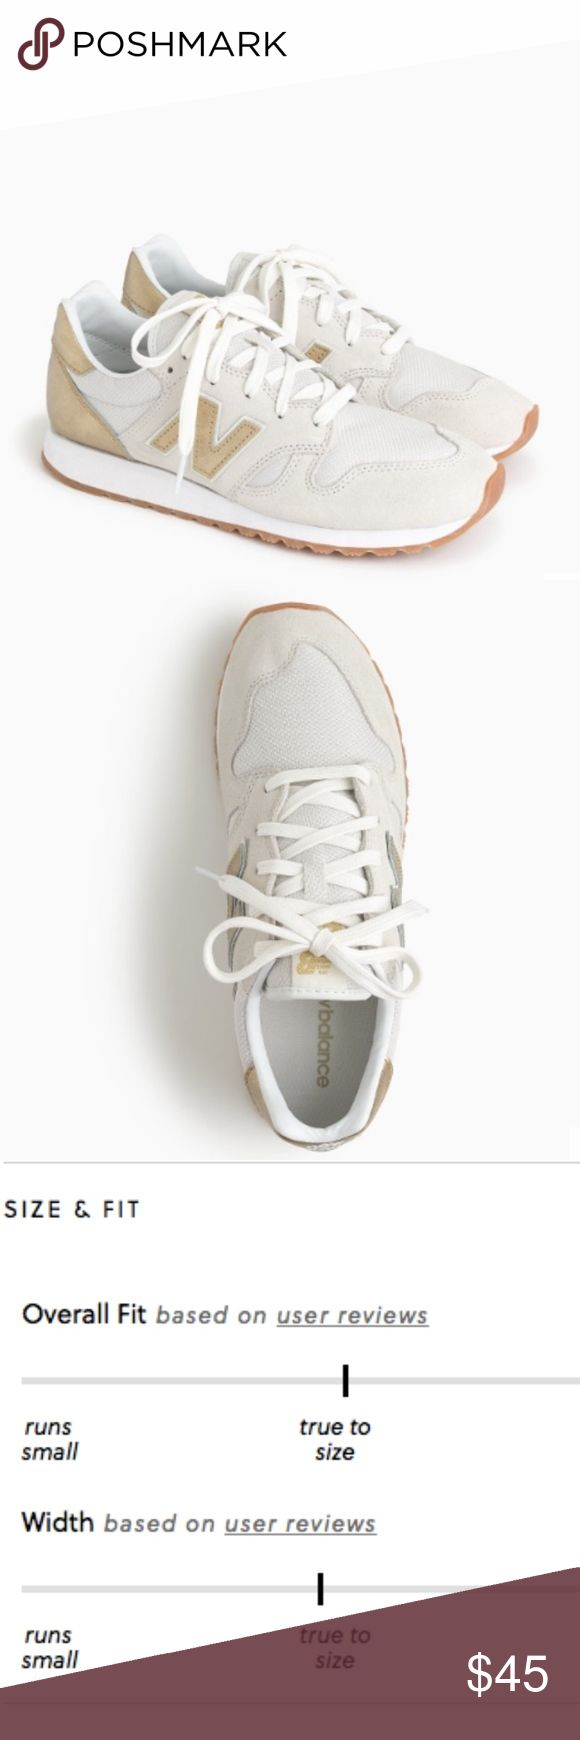 J. Crew New Balance 520 sneakers in Gold Salt Women's New Balance® for J.Crew 520 sneakers :: G8302  Color: Gold Salt  Size 9.5   GUC - gently worn   (more photos coming soon!) J. Crew Shoes Sneakers